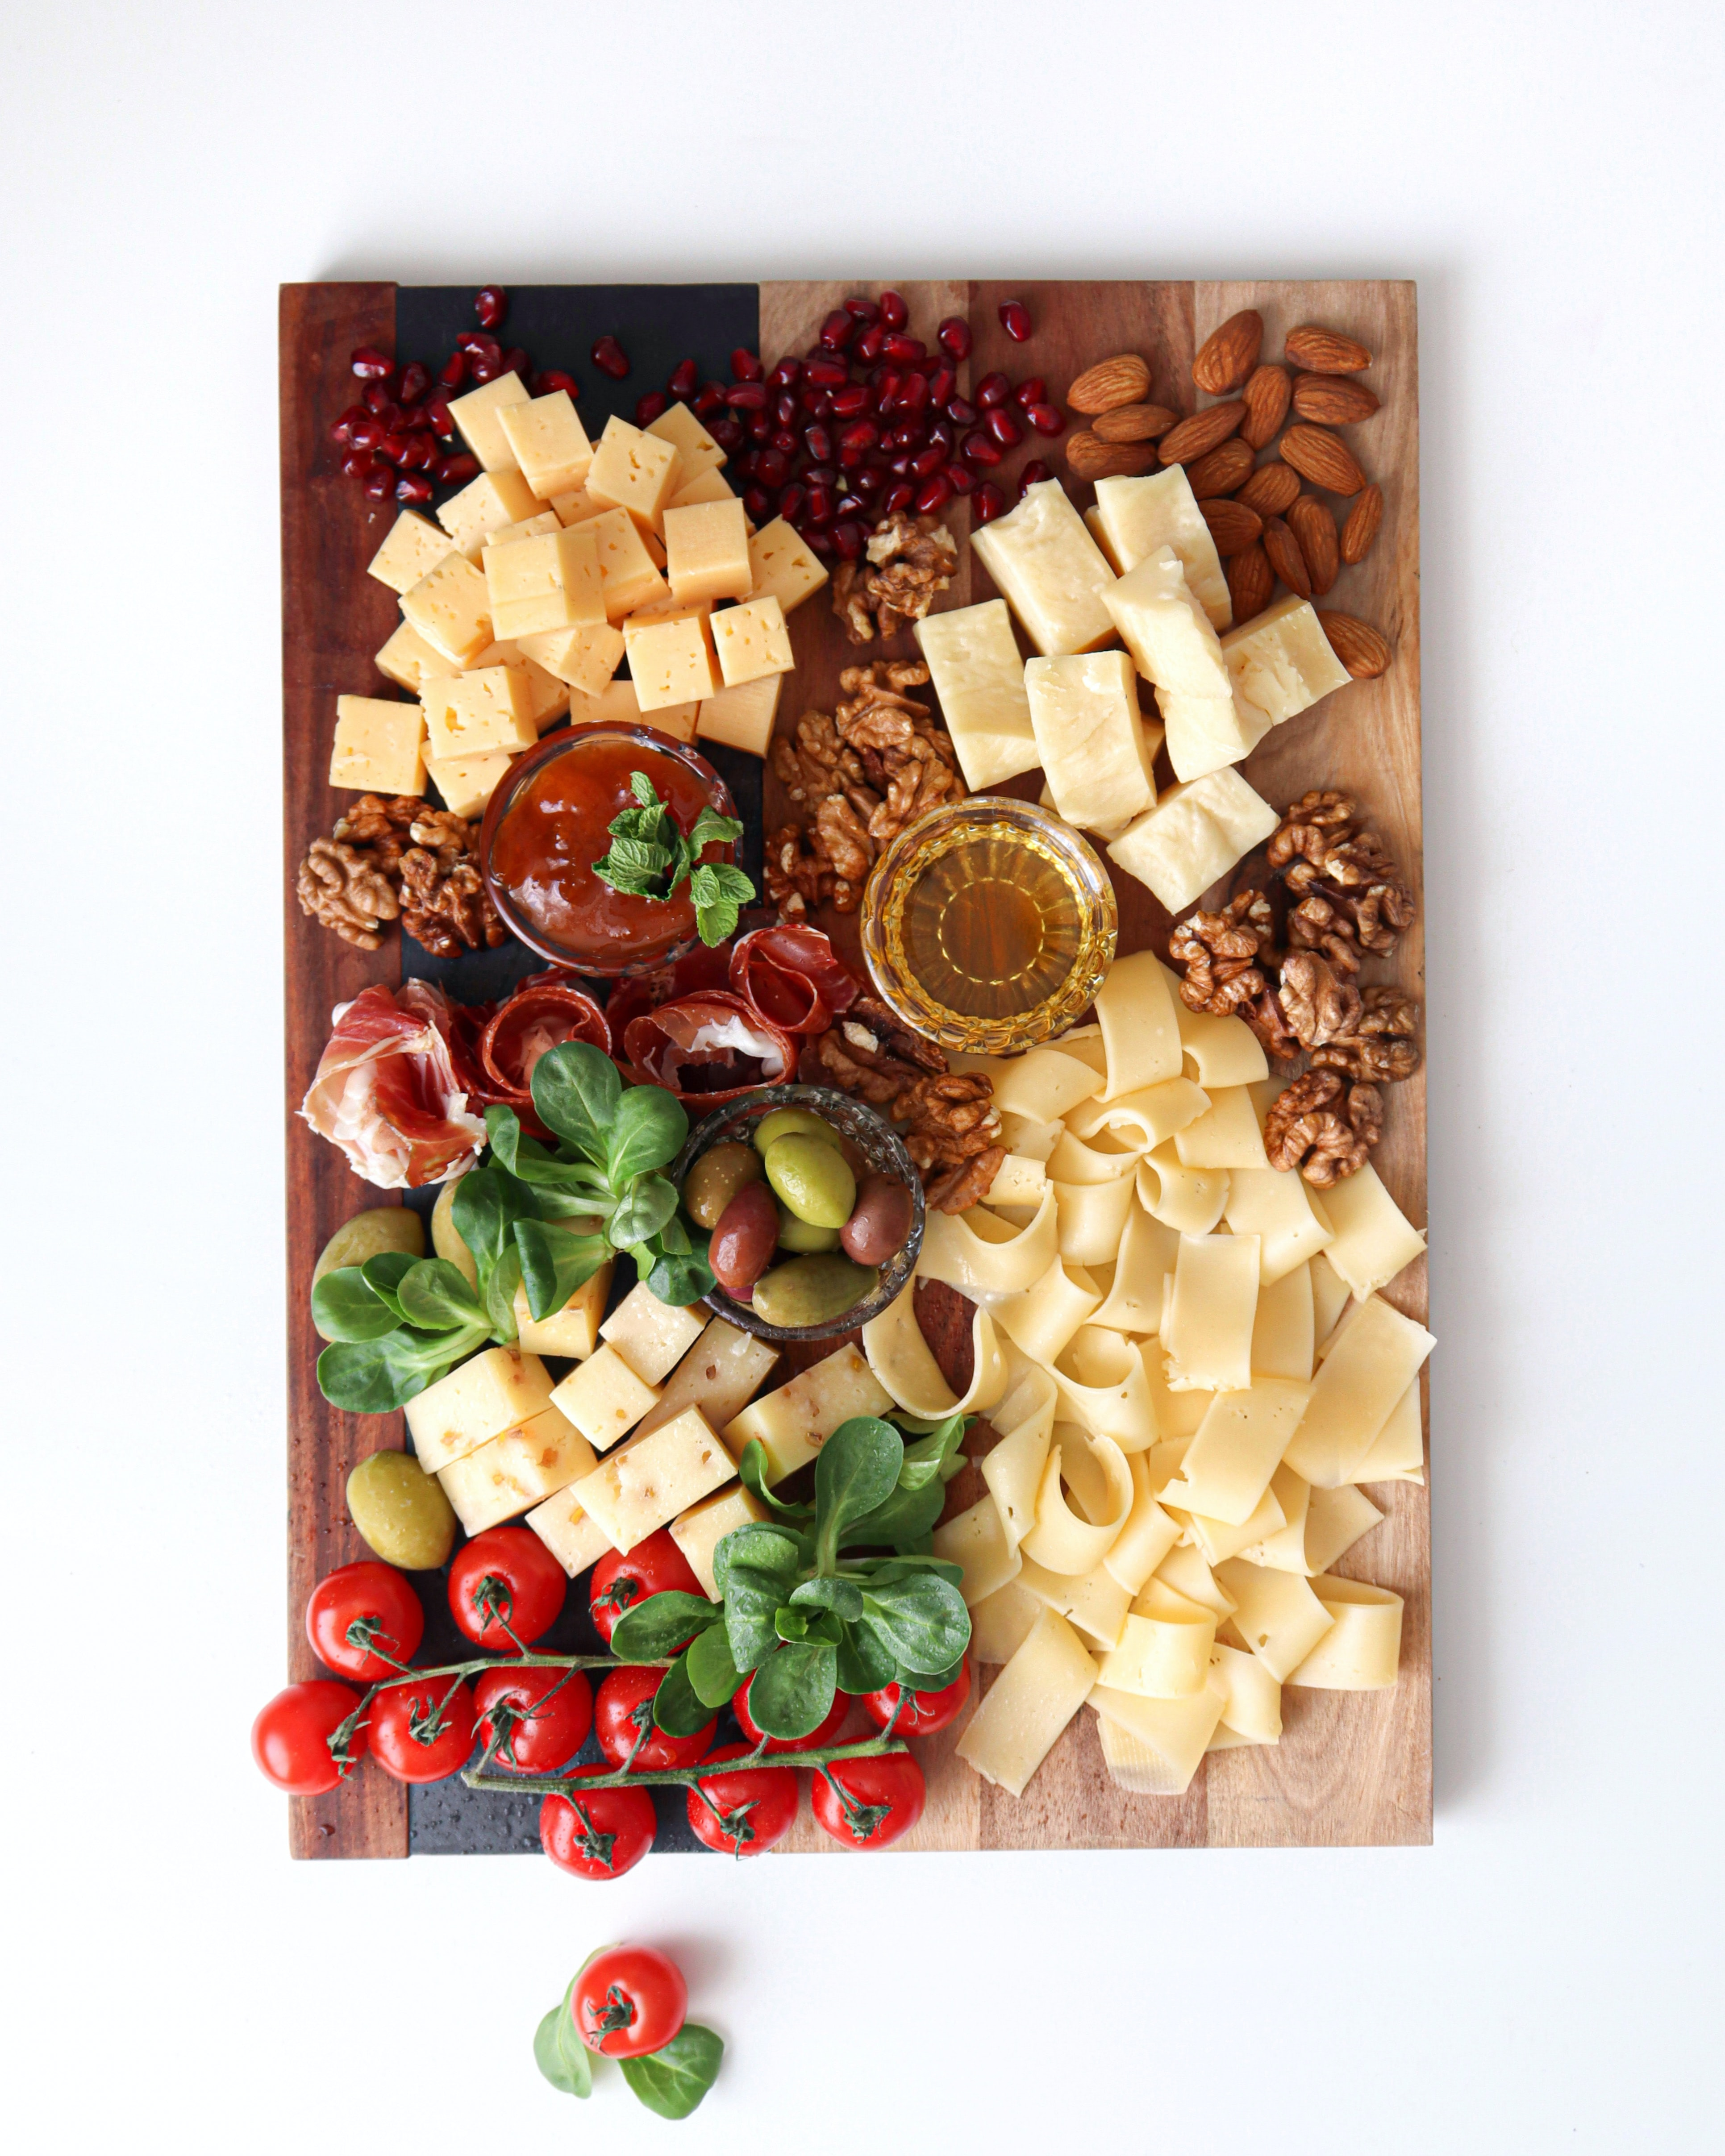 Cheese Platter Pictures Download Free Images On Unsplash